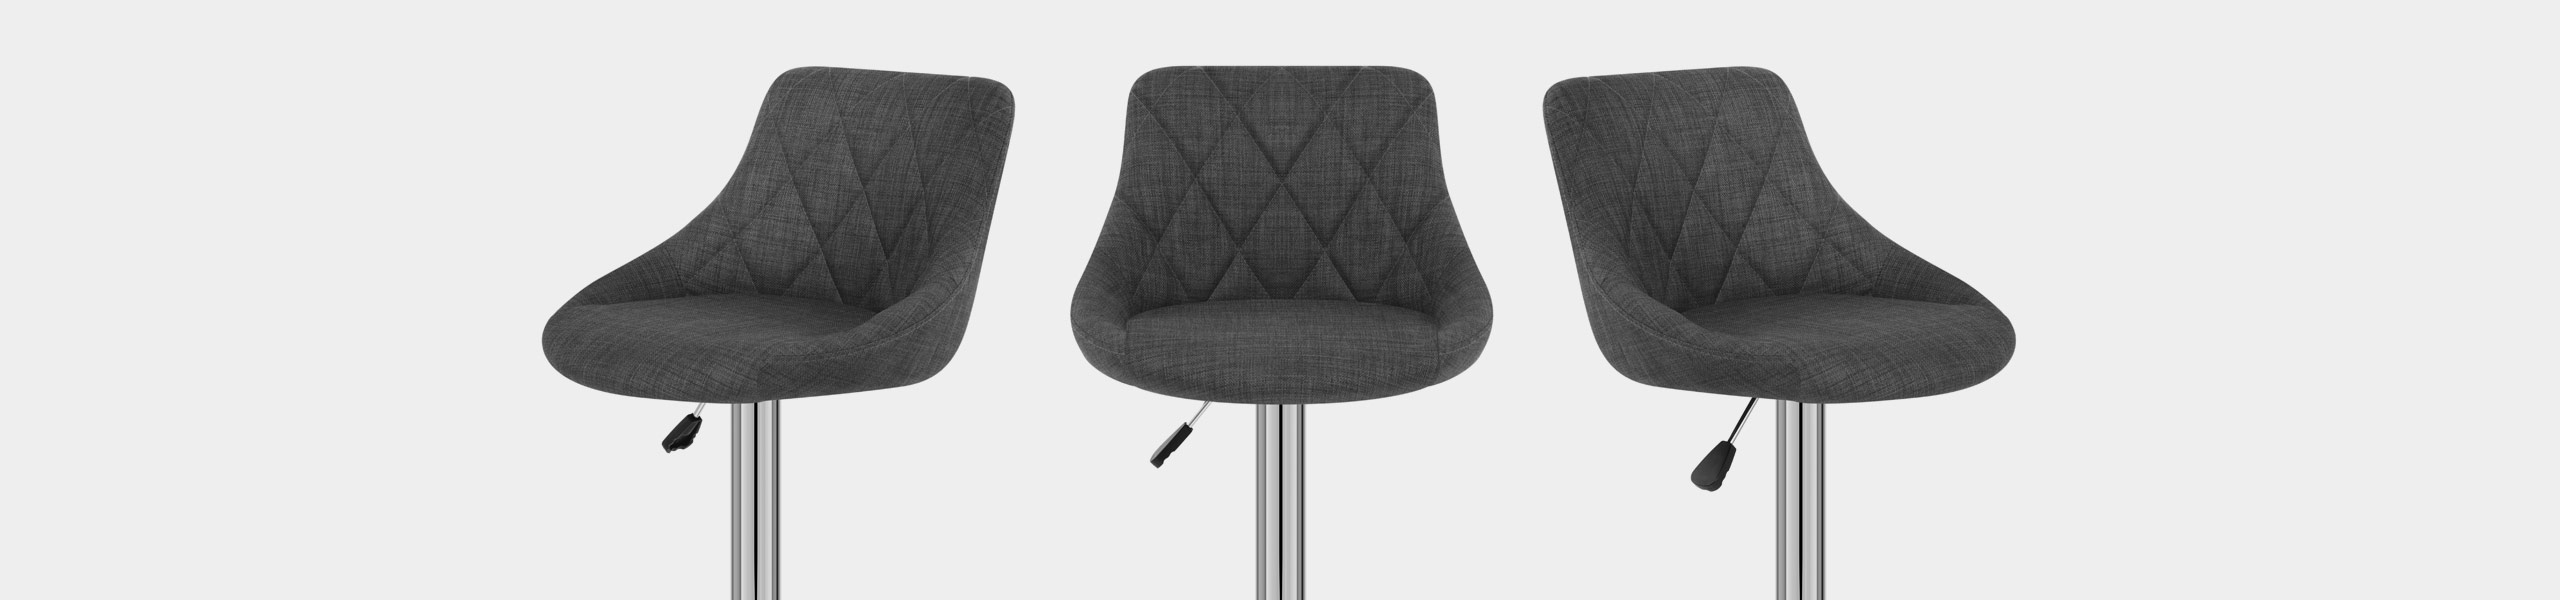 Stitch Bar Stool Charcoal Fabric Video Banner